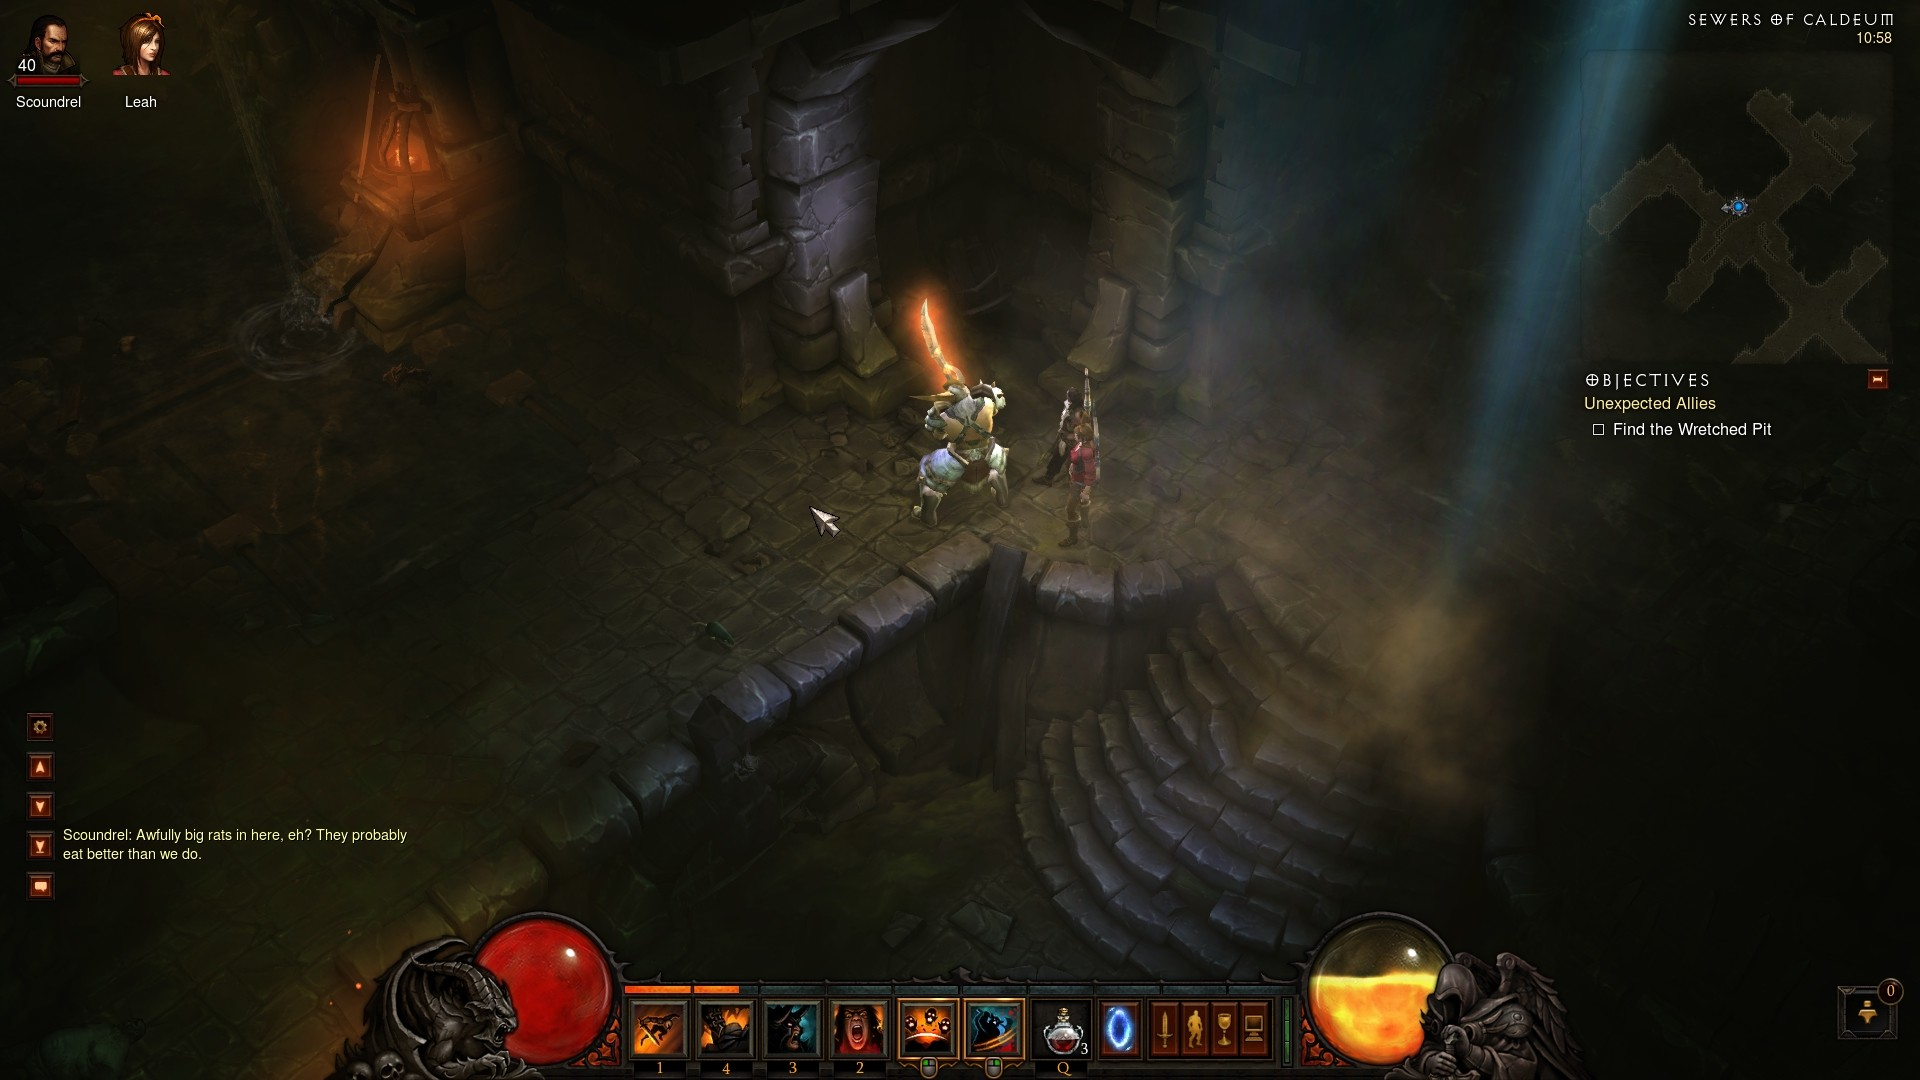 Diablo 3 - If I know Blizzard there will be pizza or a gian rat down here